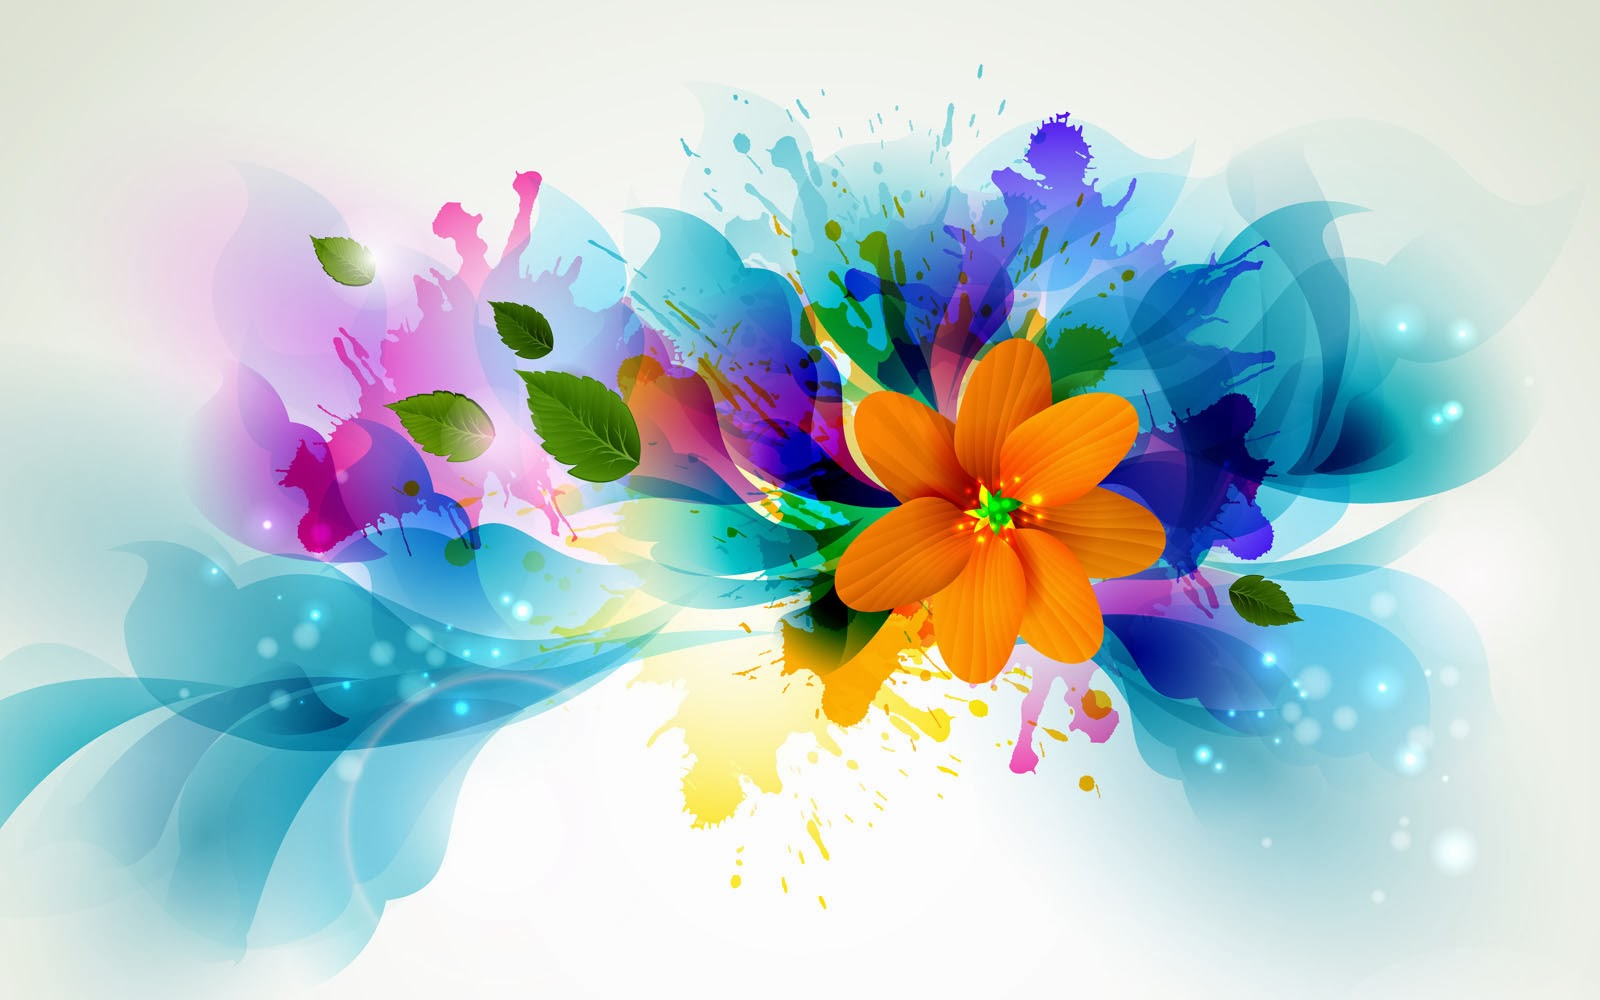 3D Flowers Wallpapers   Top Wallpaper Desktop 1600x1000